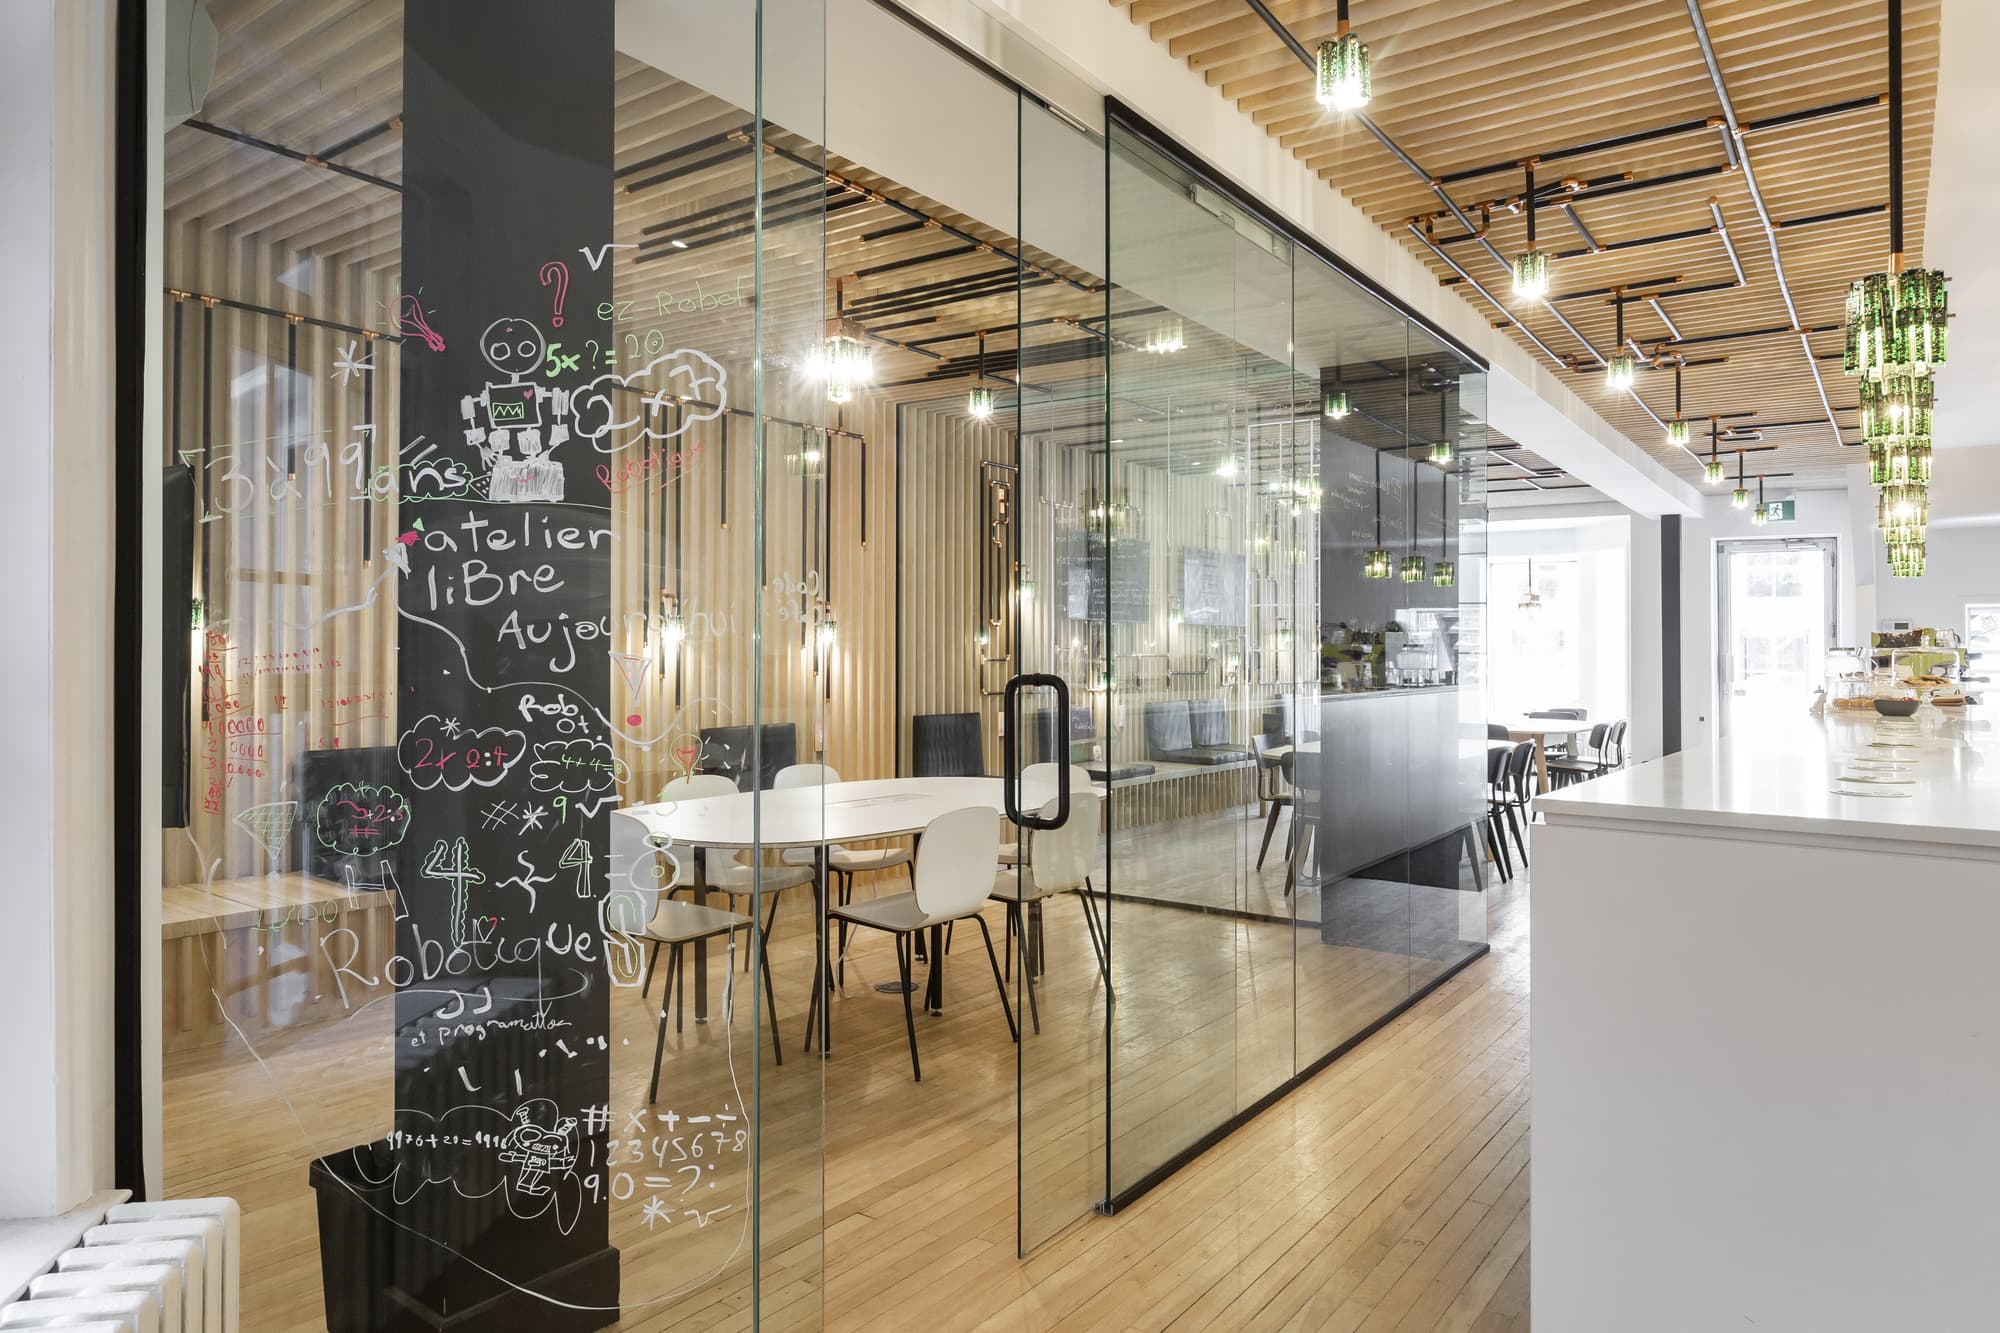 construction commercial - internet cafe with a glass conference room